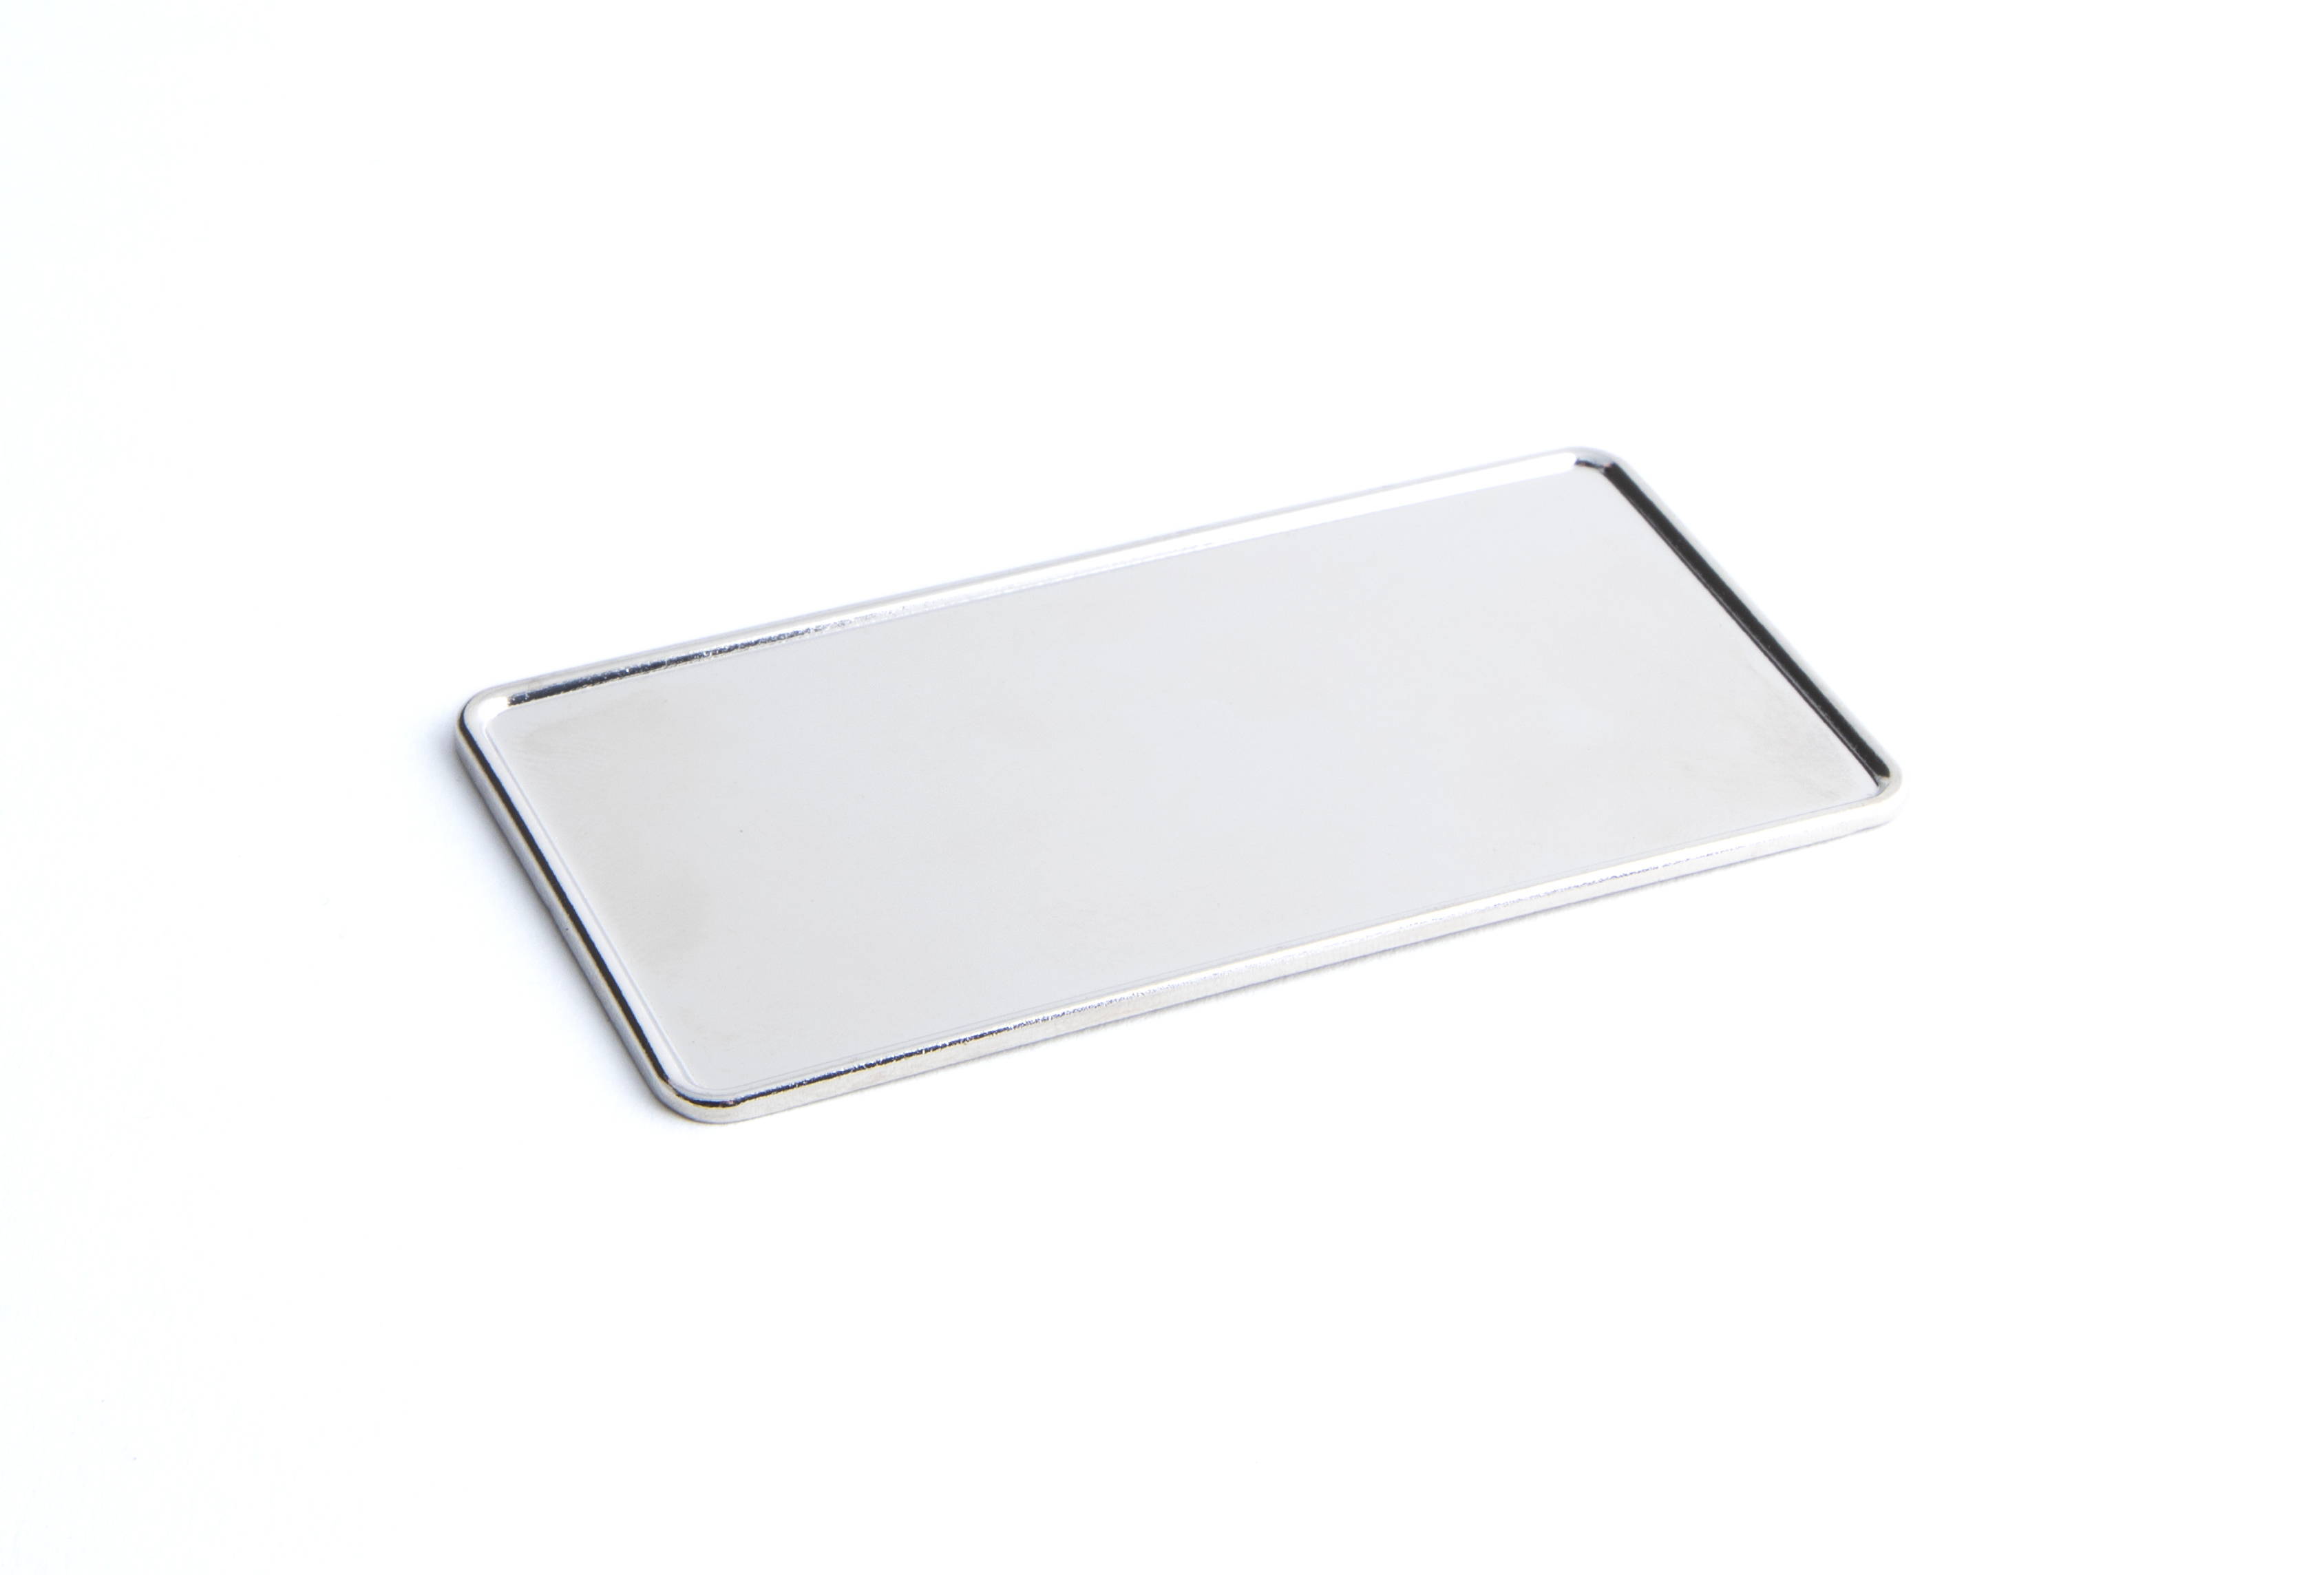 76 x 38 mm Metal Badge Frame with raised edge Nickel Plated